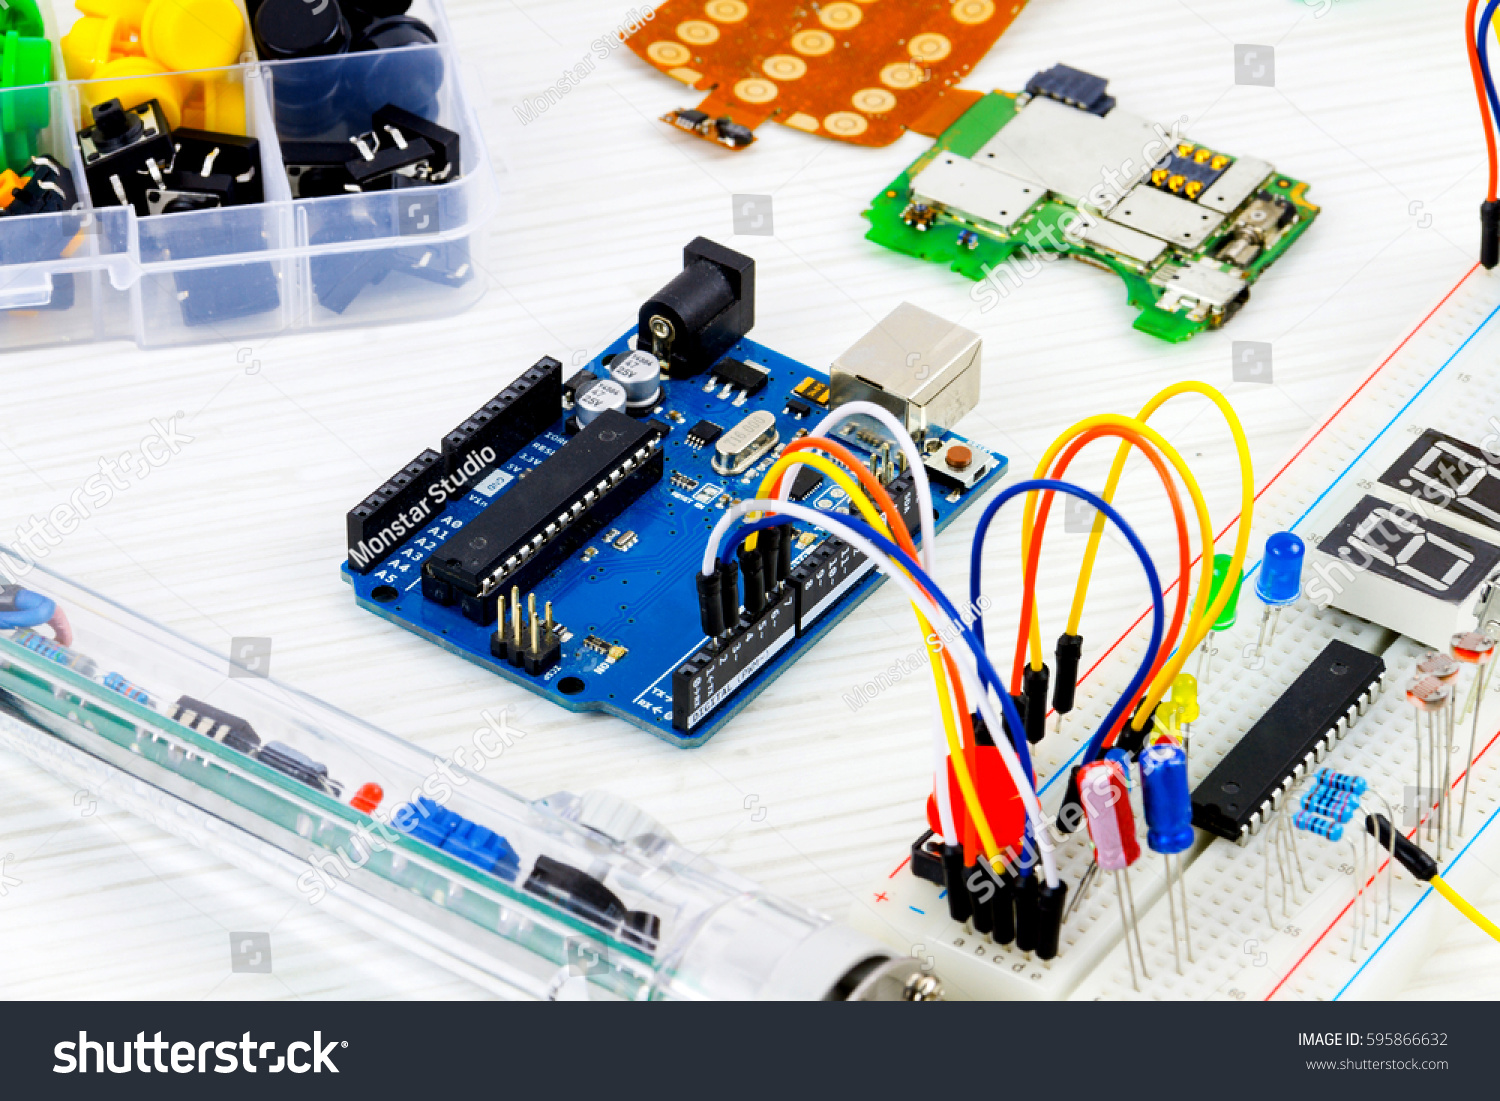 Microcontrollers Chips Resistors Lightemitting Diodes On Stock Photo Light Emitting Circuits And White Desktop Of Hardware Engineer